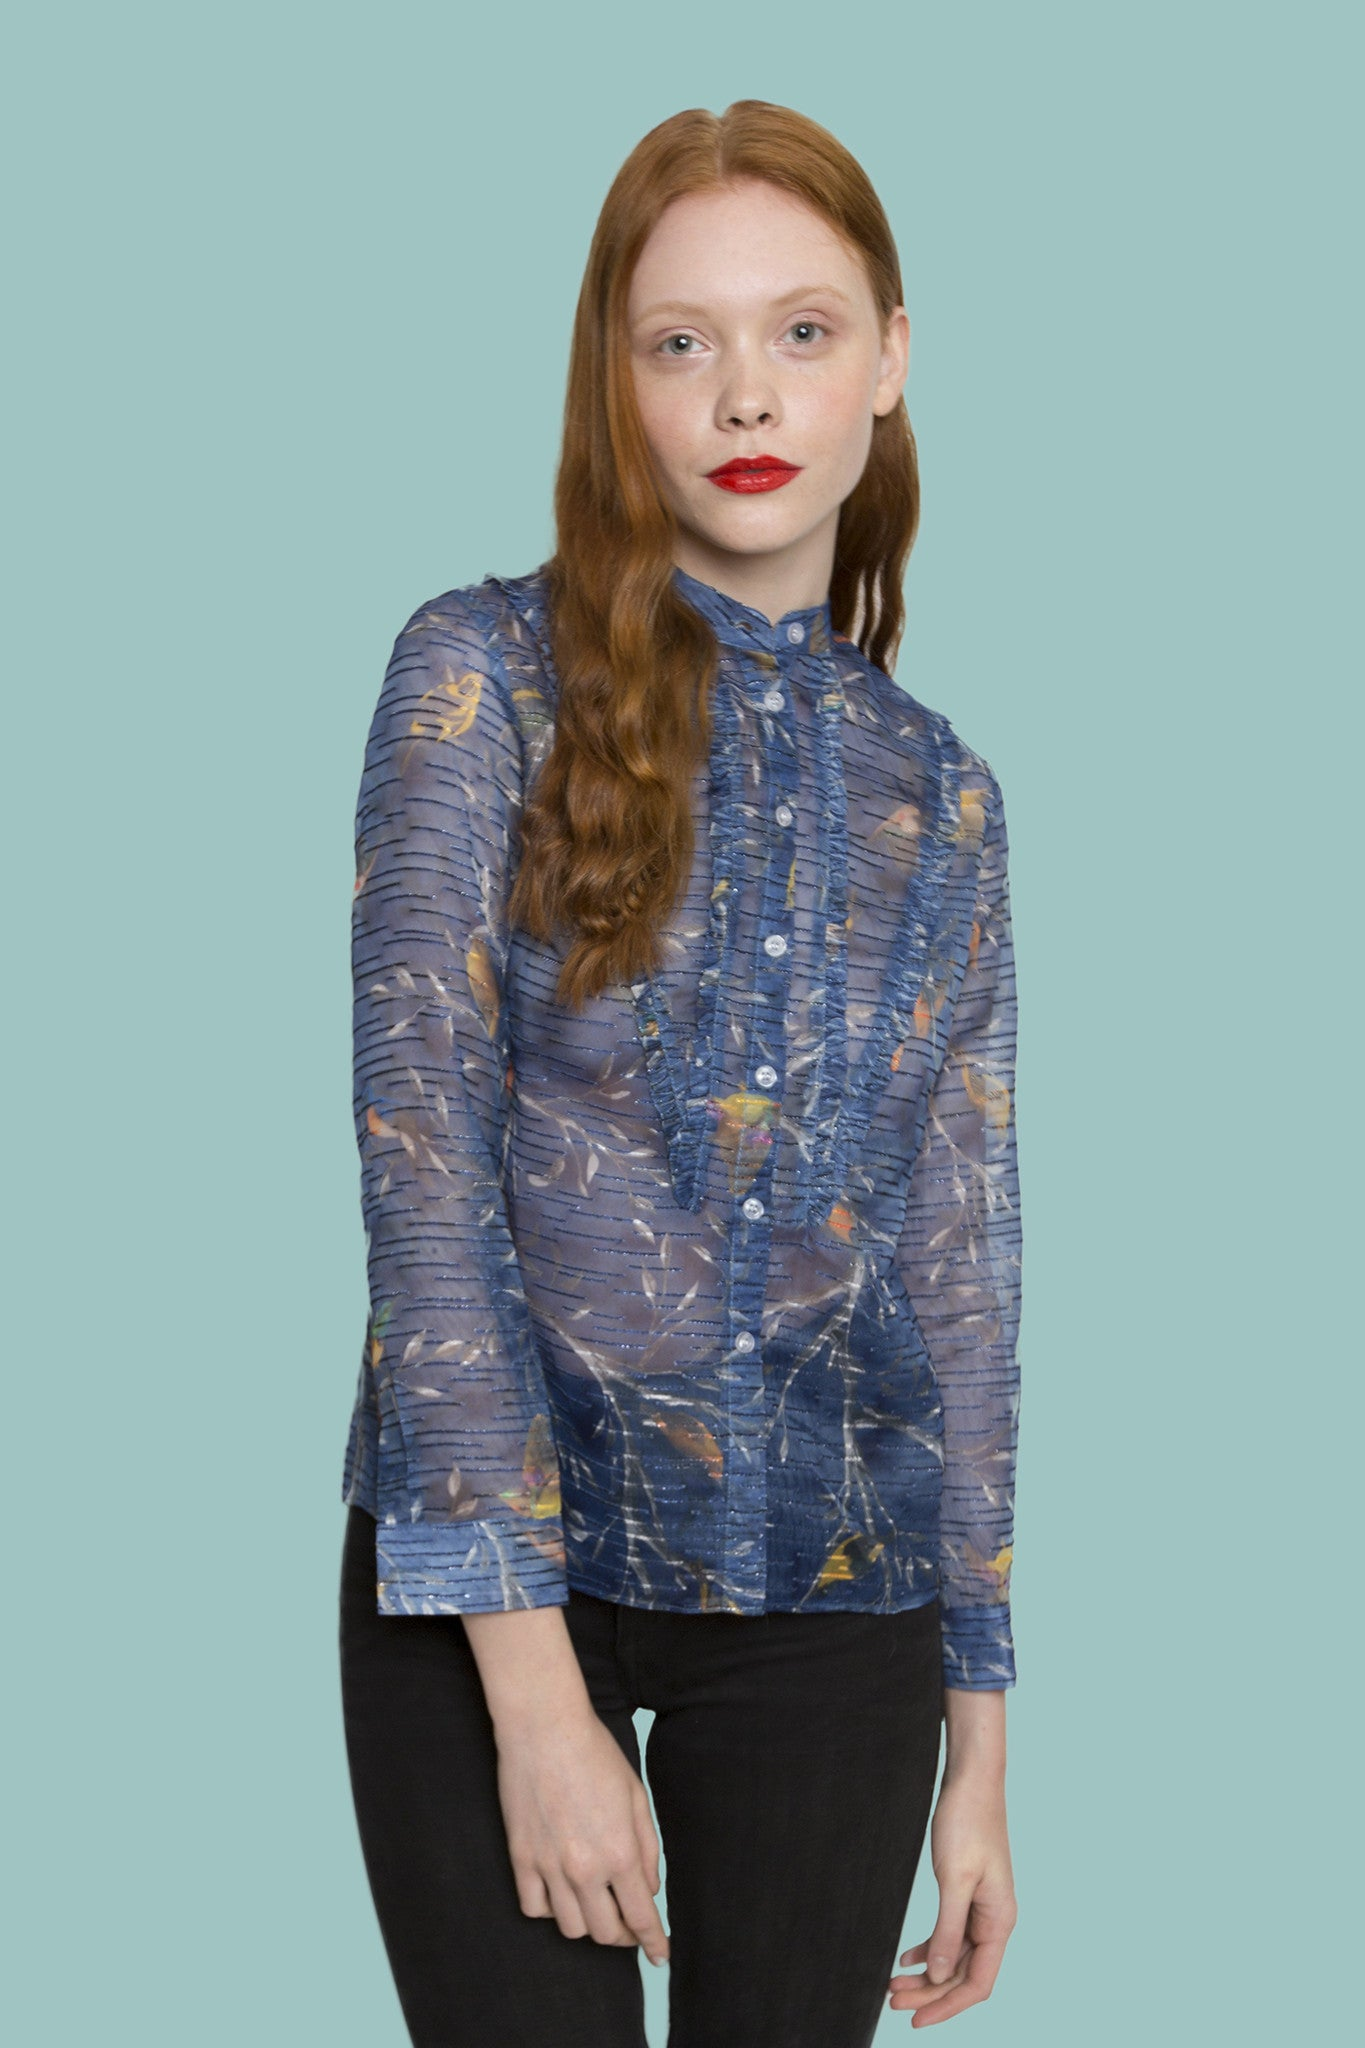 Forest light blue floral long sleeve shirt